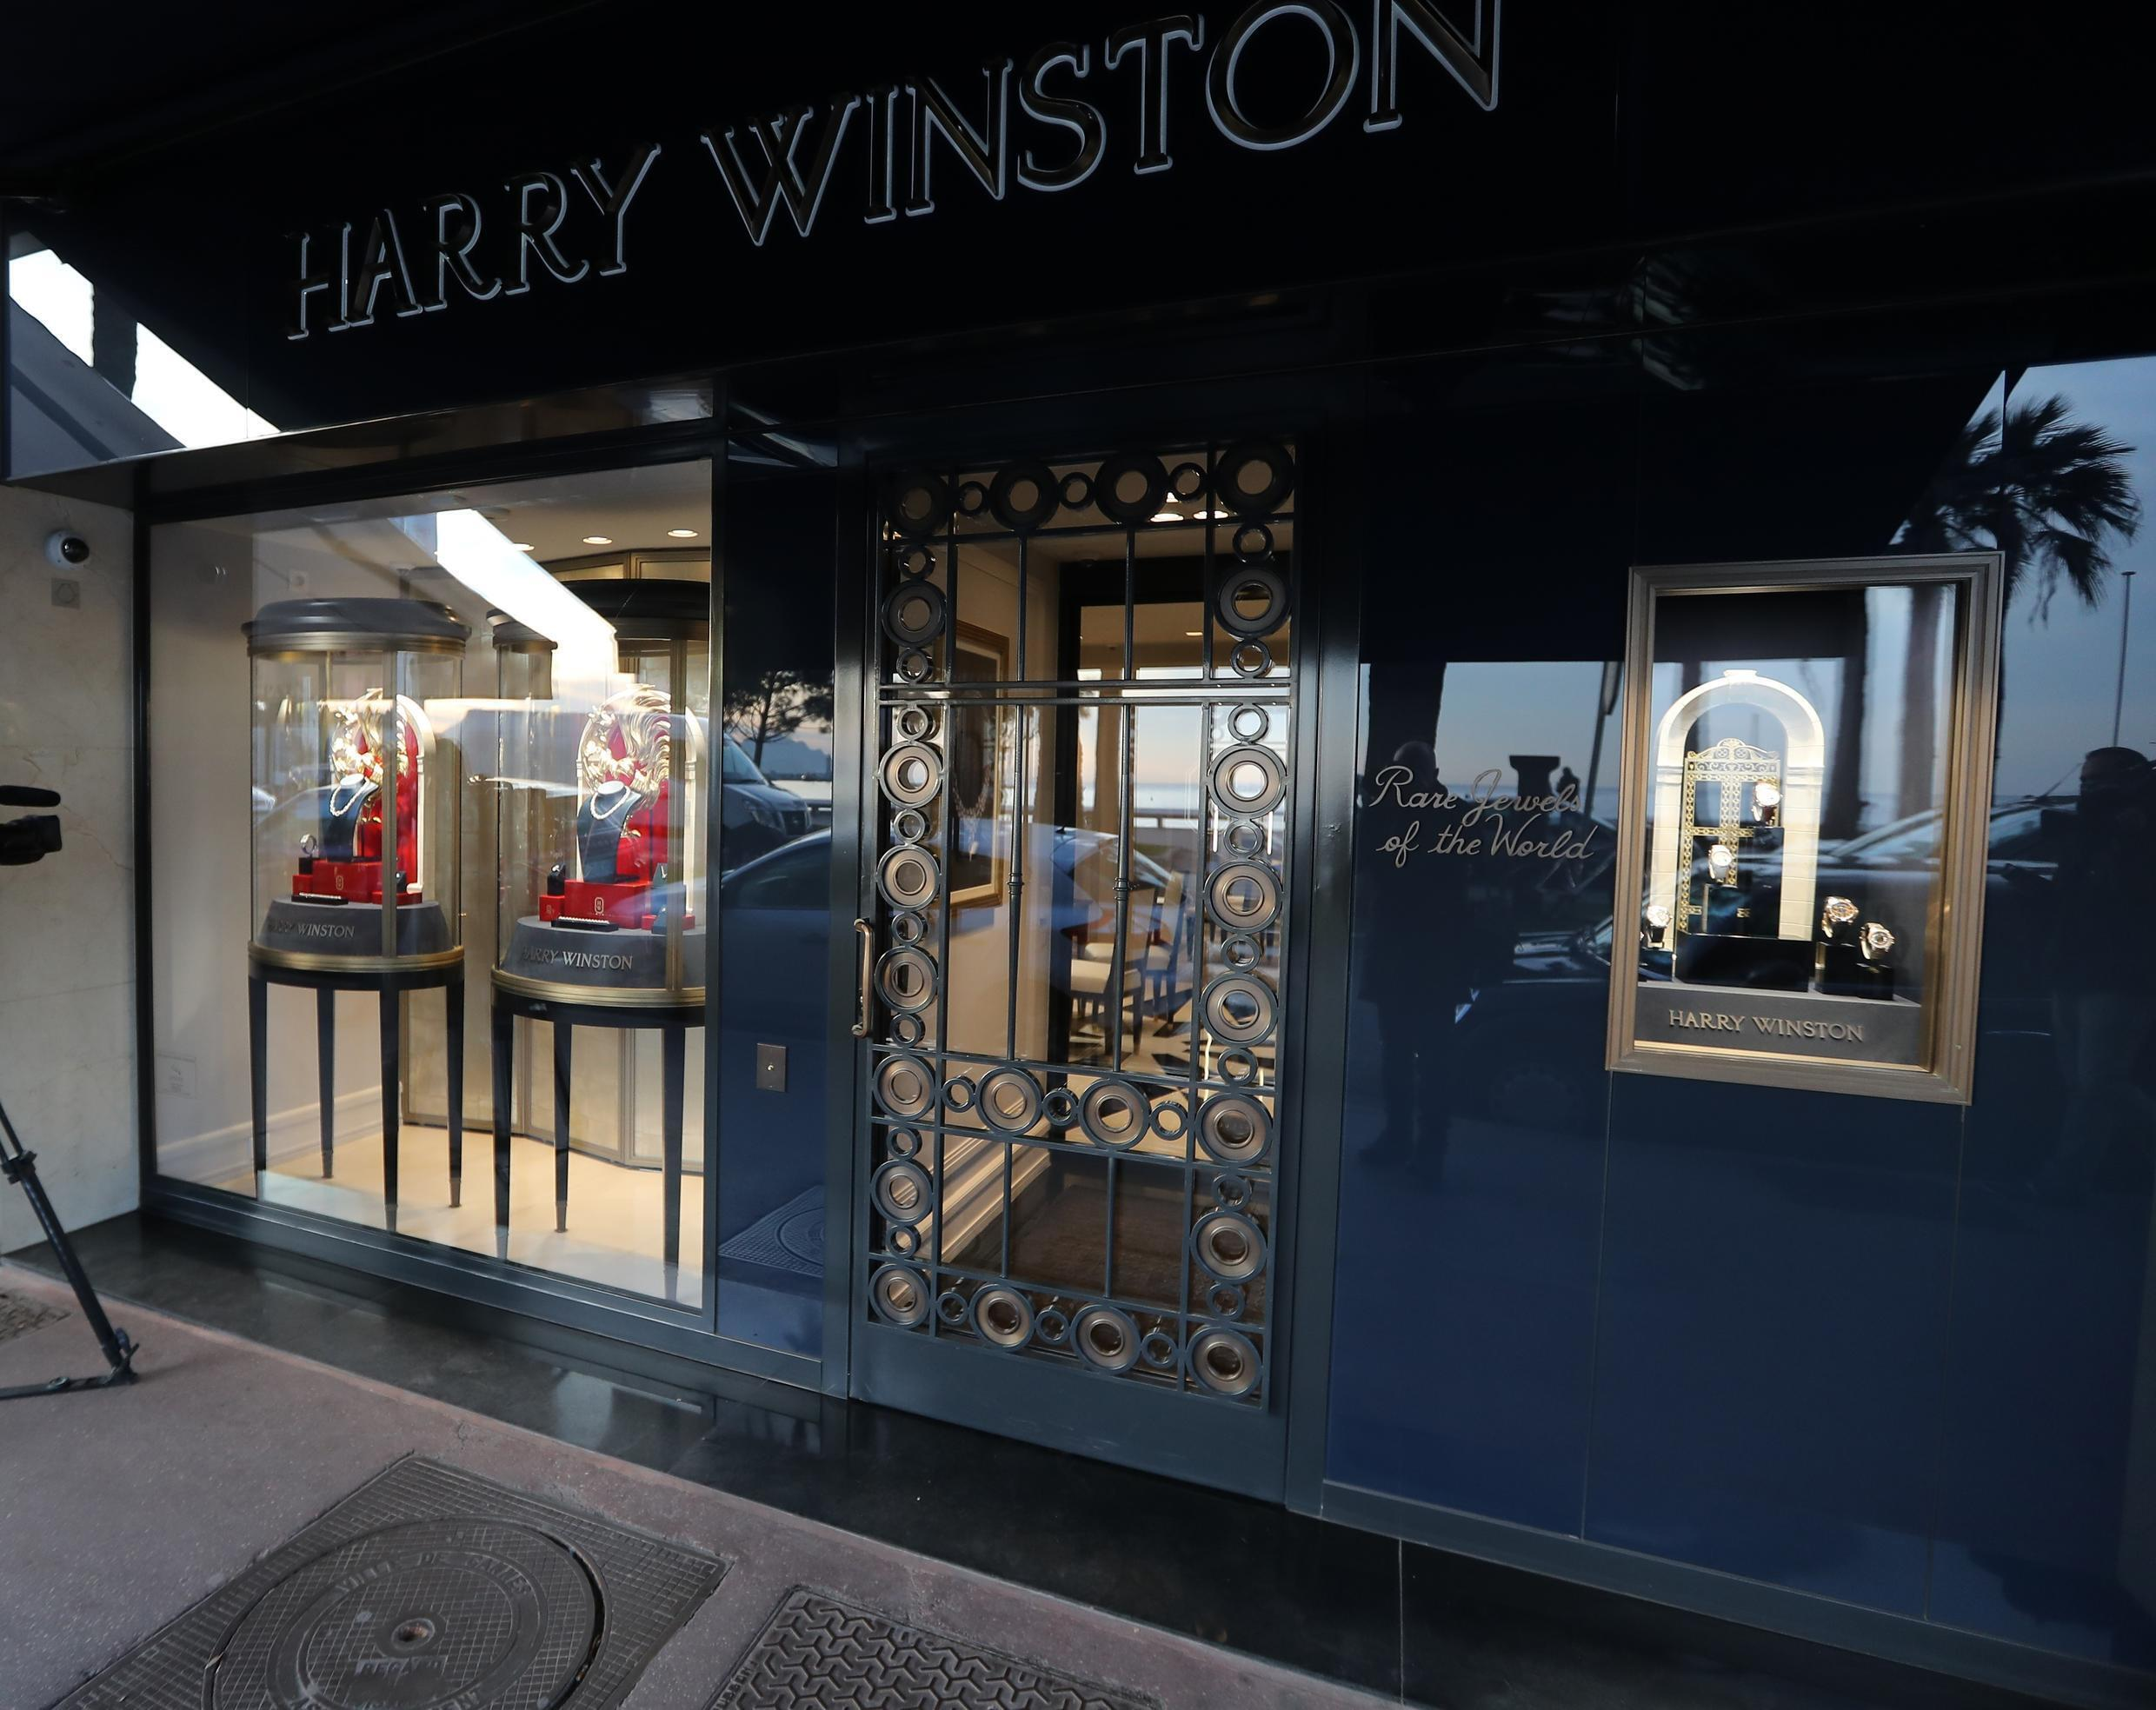 The shop window of the Harry Winston jewelry shop on the Croisette promenade in Cannes, southern France, on January 18, 2017, a few hours after a robbery took place at the shop.